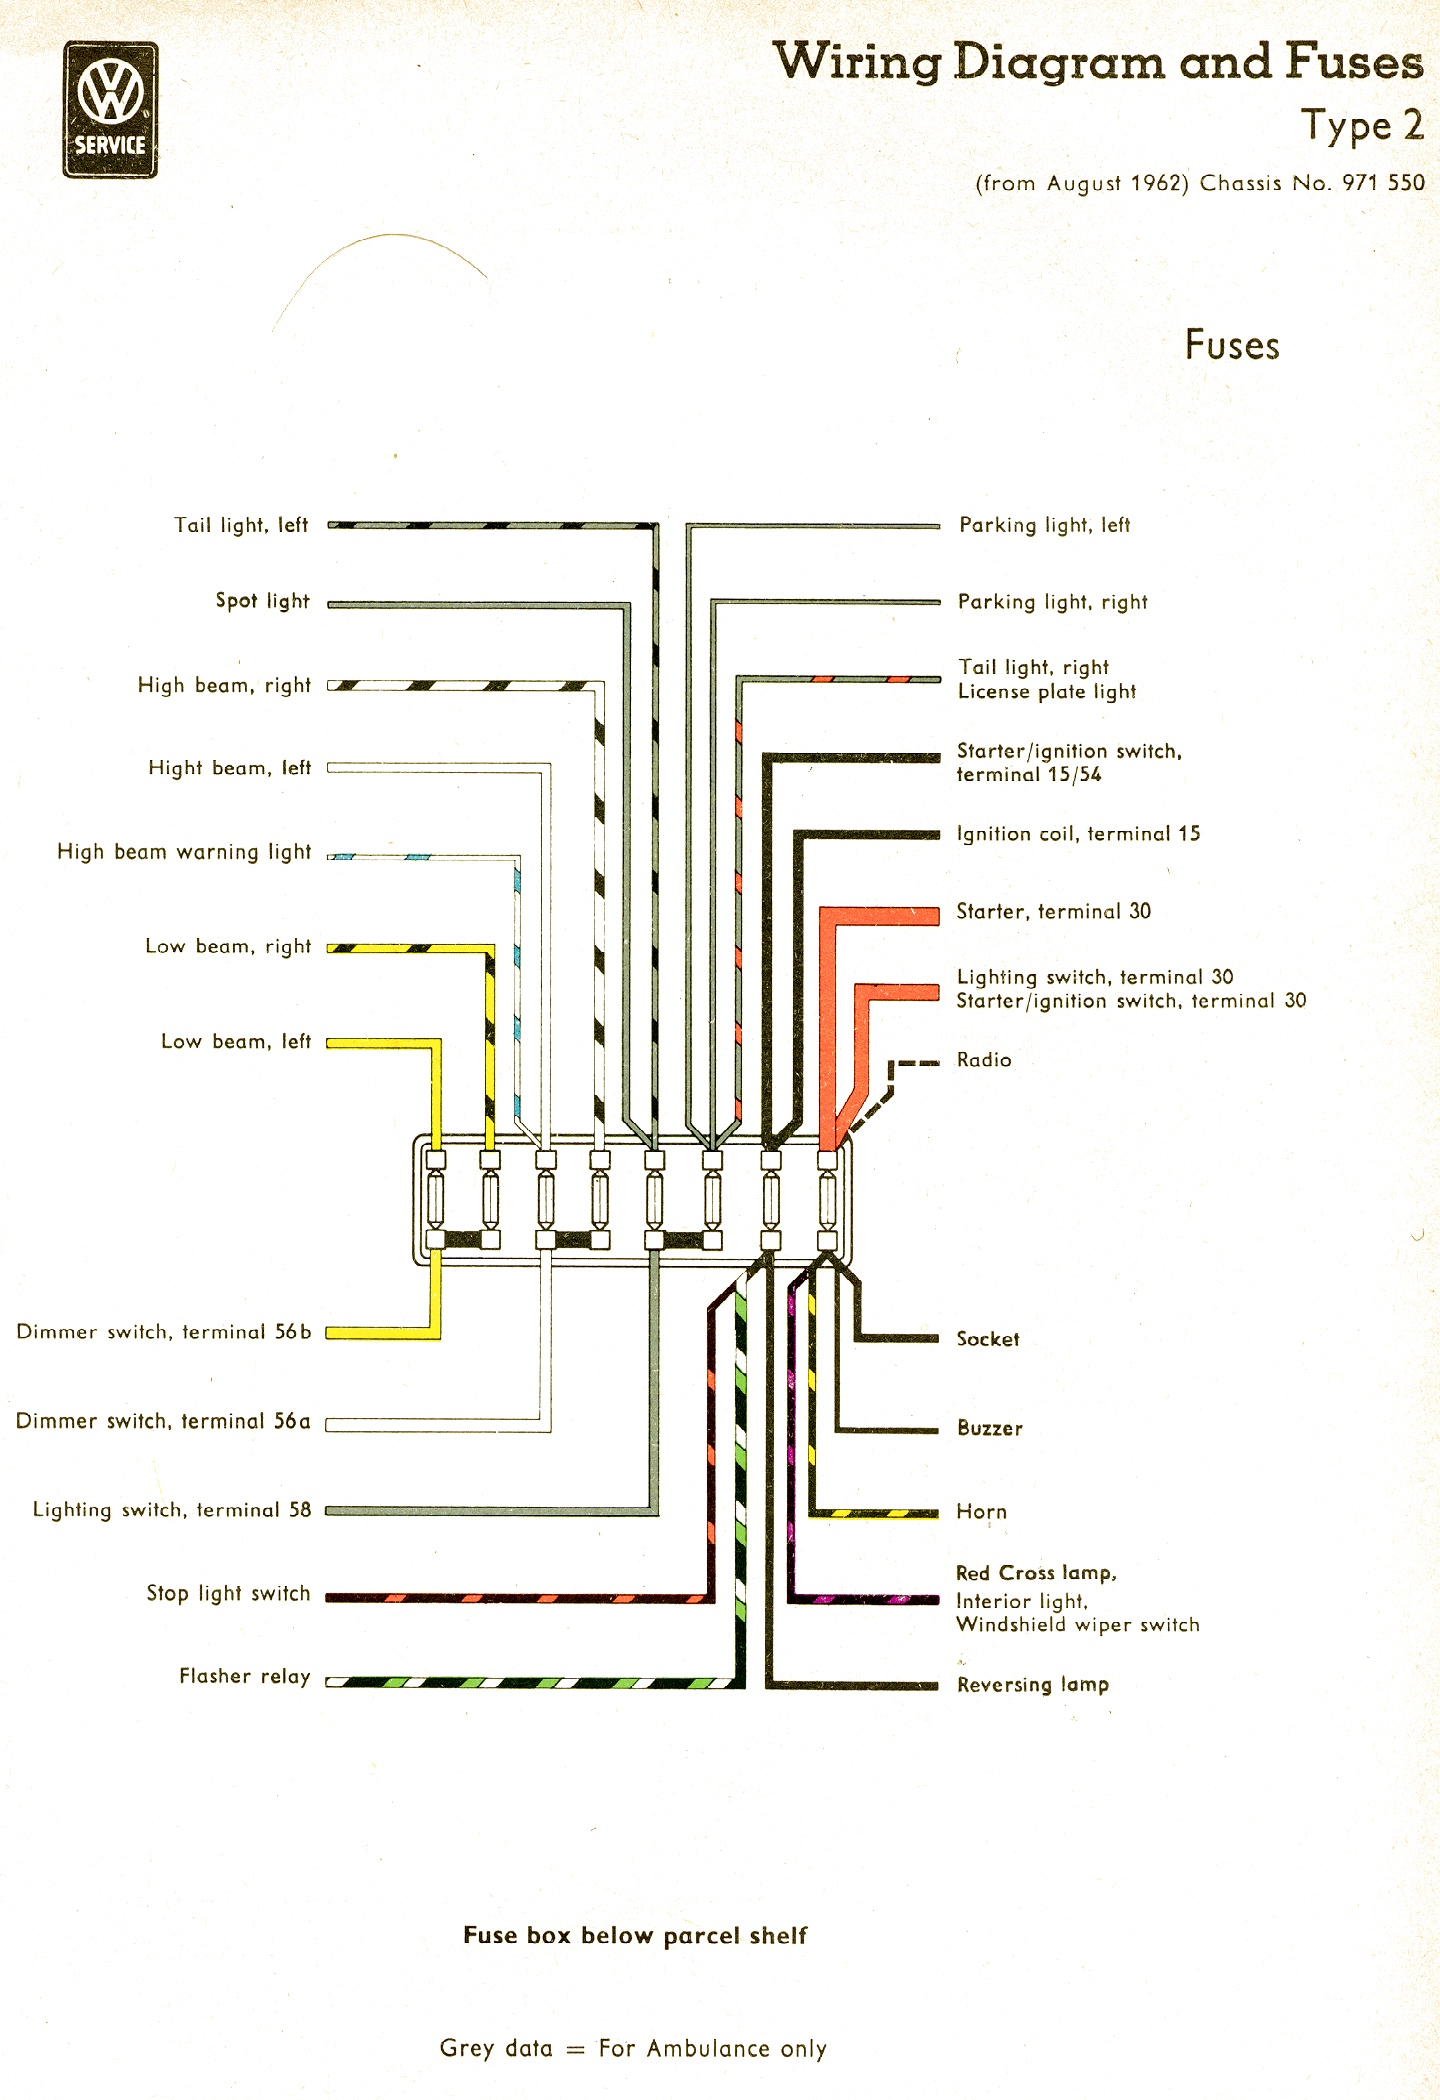 71 volkswagen ignition wiring diagram fuse box \u0026 wiring diagram Wiring Diagram for 1979 VW Super Beetle vintagebus com vw bus (and other) wiring diagrams 71 volkswagen